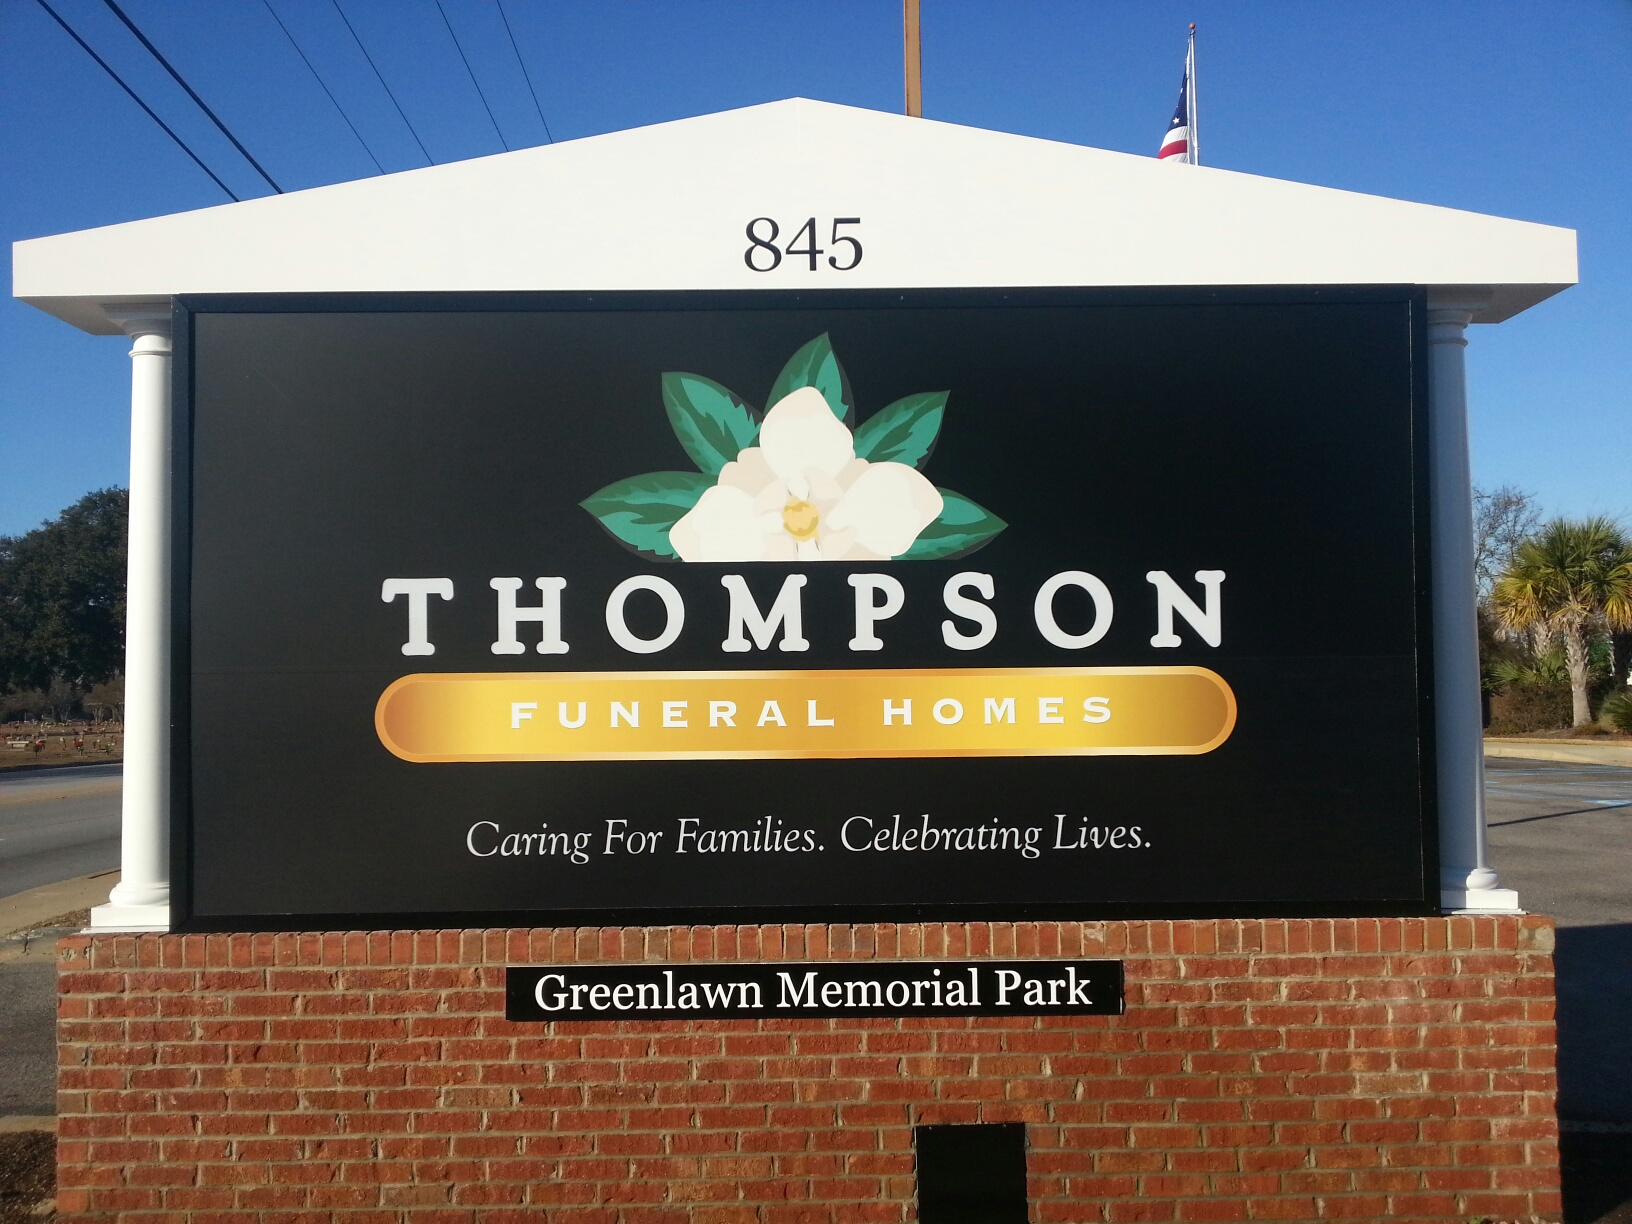 Thompson Funeral Home At Greenlawn Memorial Park Puts Up New Signage Columbia Sc Patch